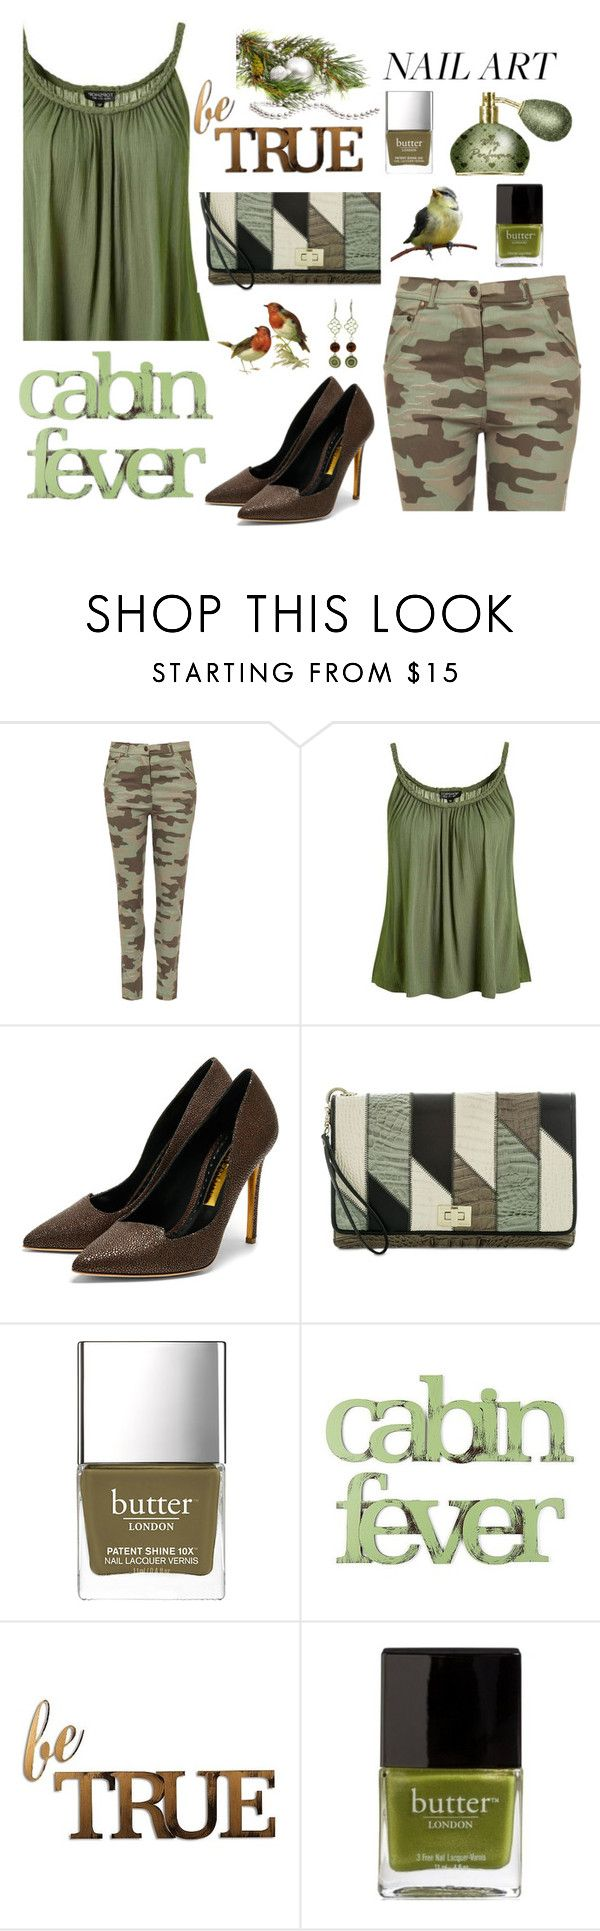 """""""Green Nails"""" by stephaniefb ❤ liked on Polyvore featuring WearAll, Topshop, Rupert Sanderson, Brahmin, British Khaki, Letter2Word and Butter London"""